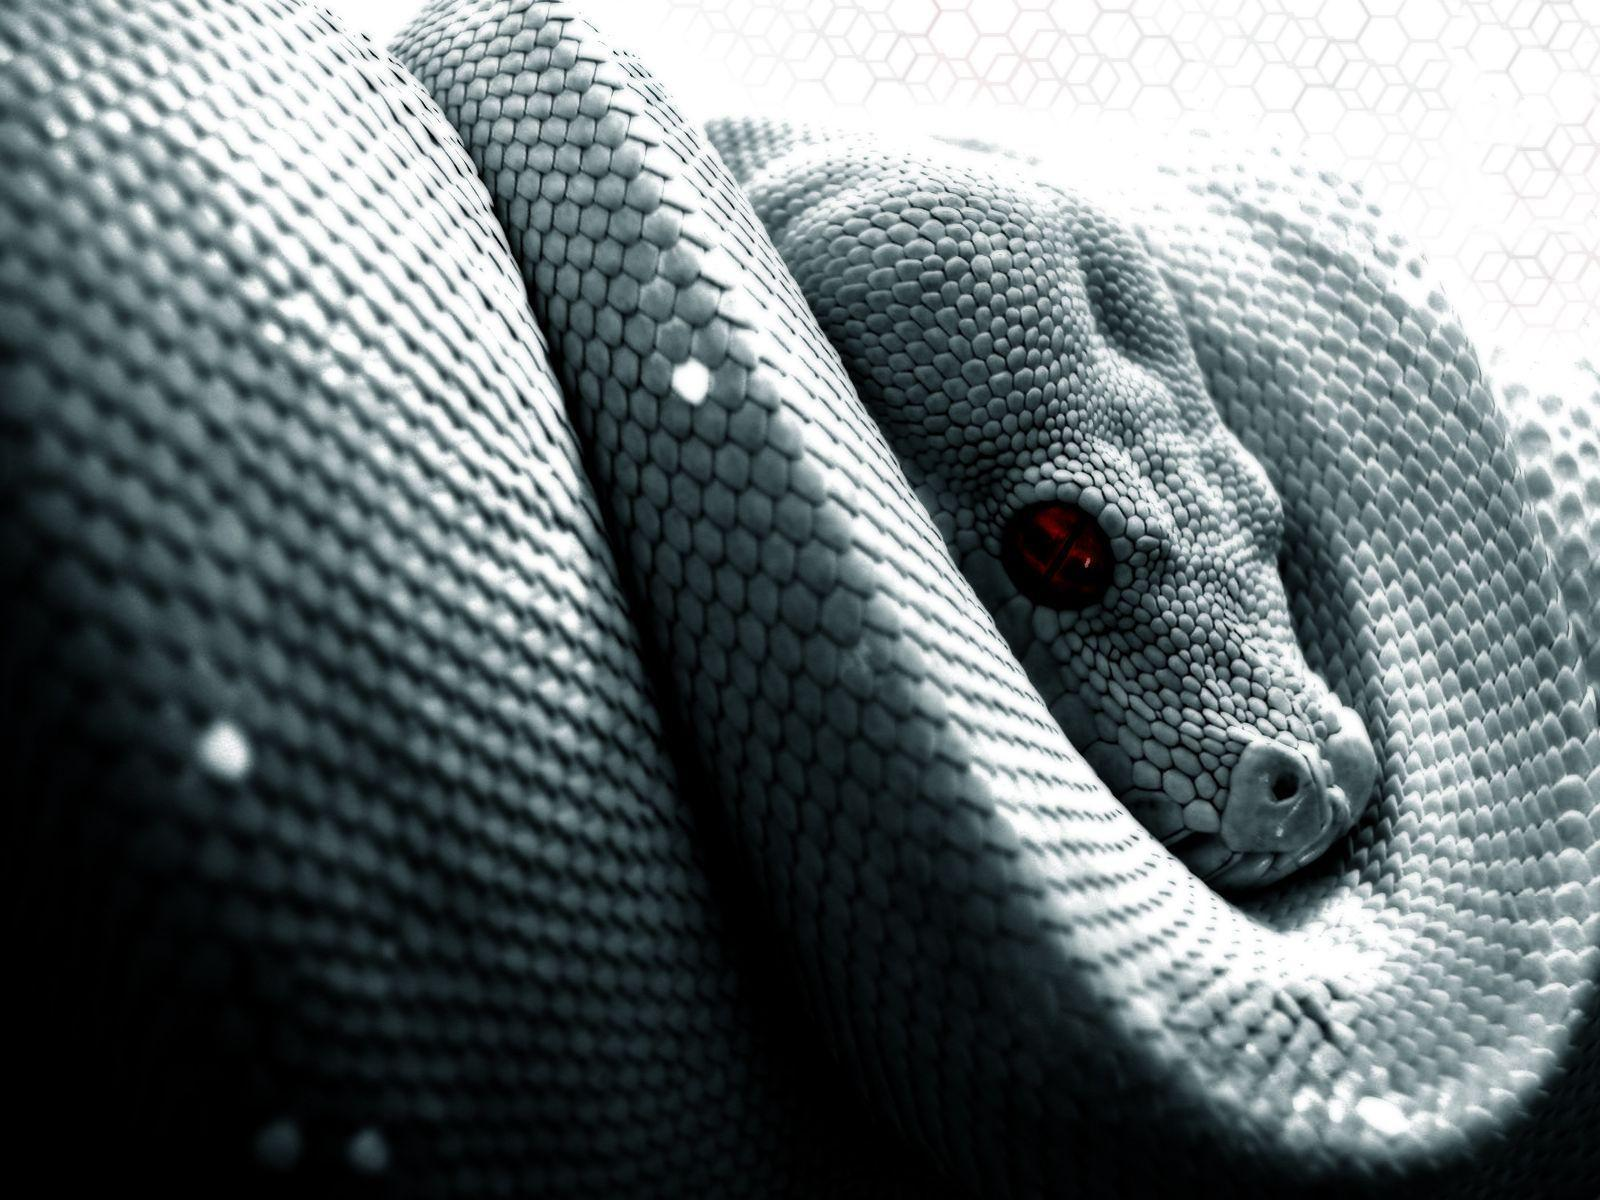 Snake Computer Wallpapers, Desktop Backgrounds 1600x1200 Id: 26823